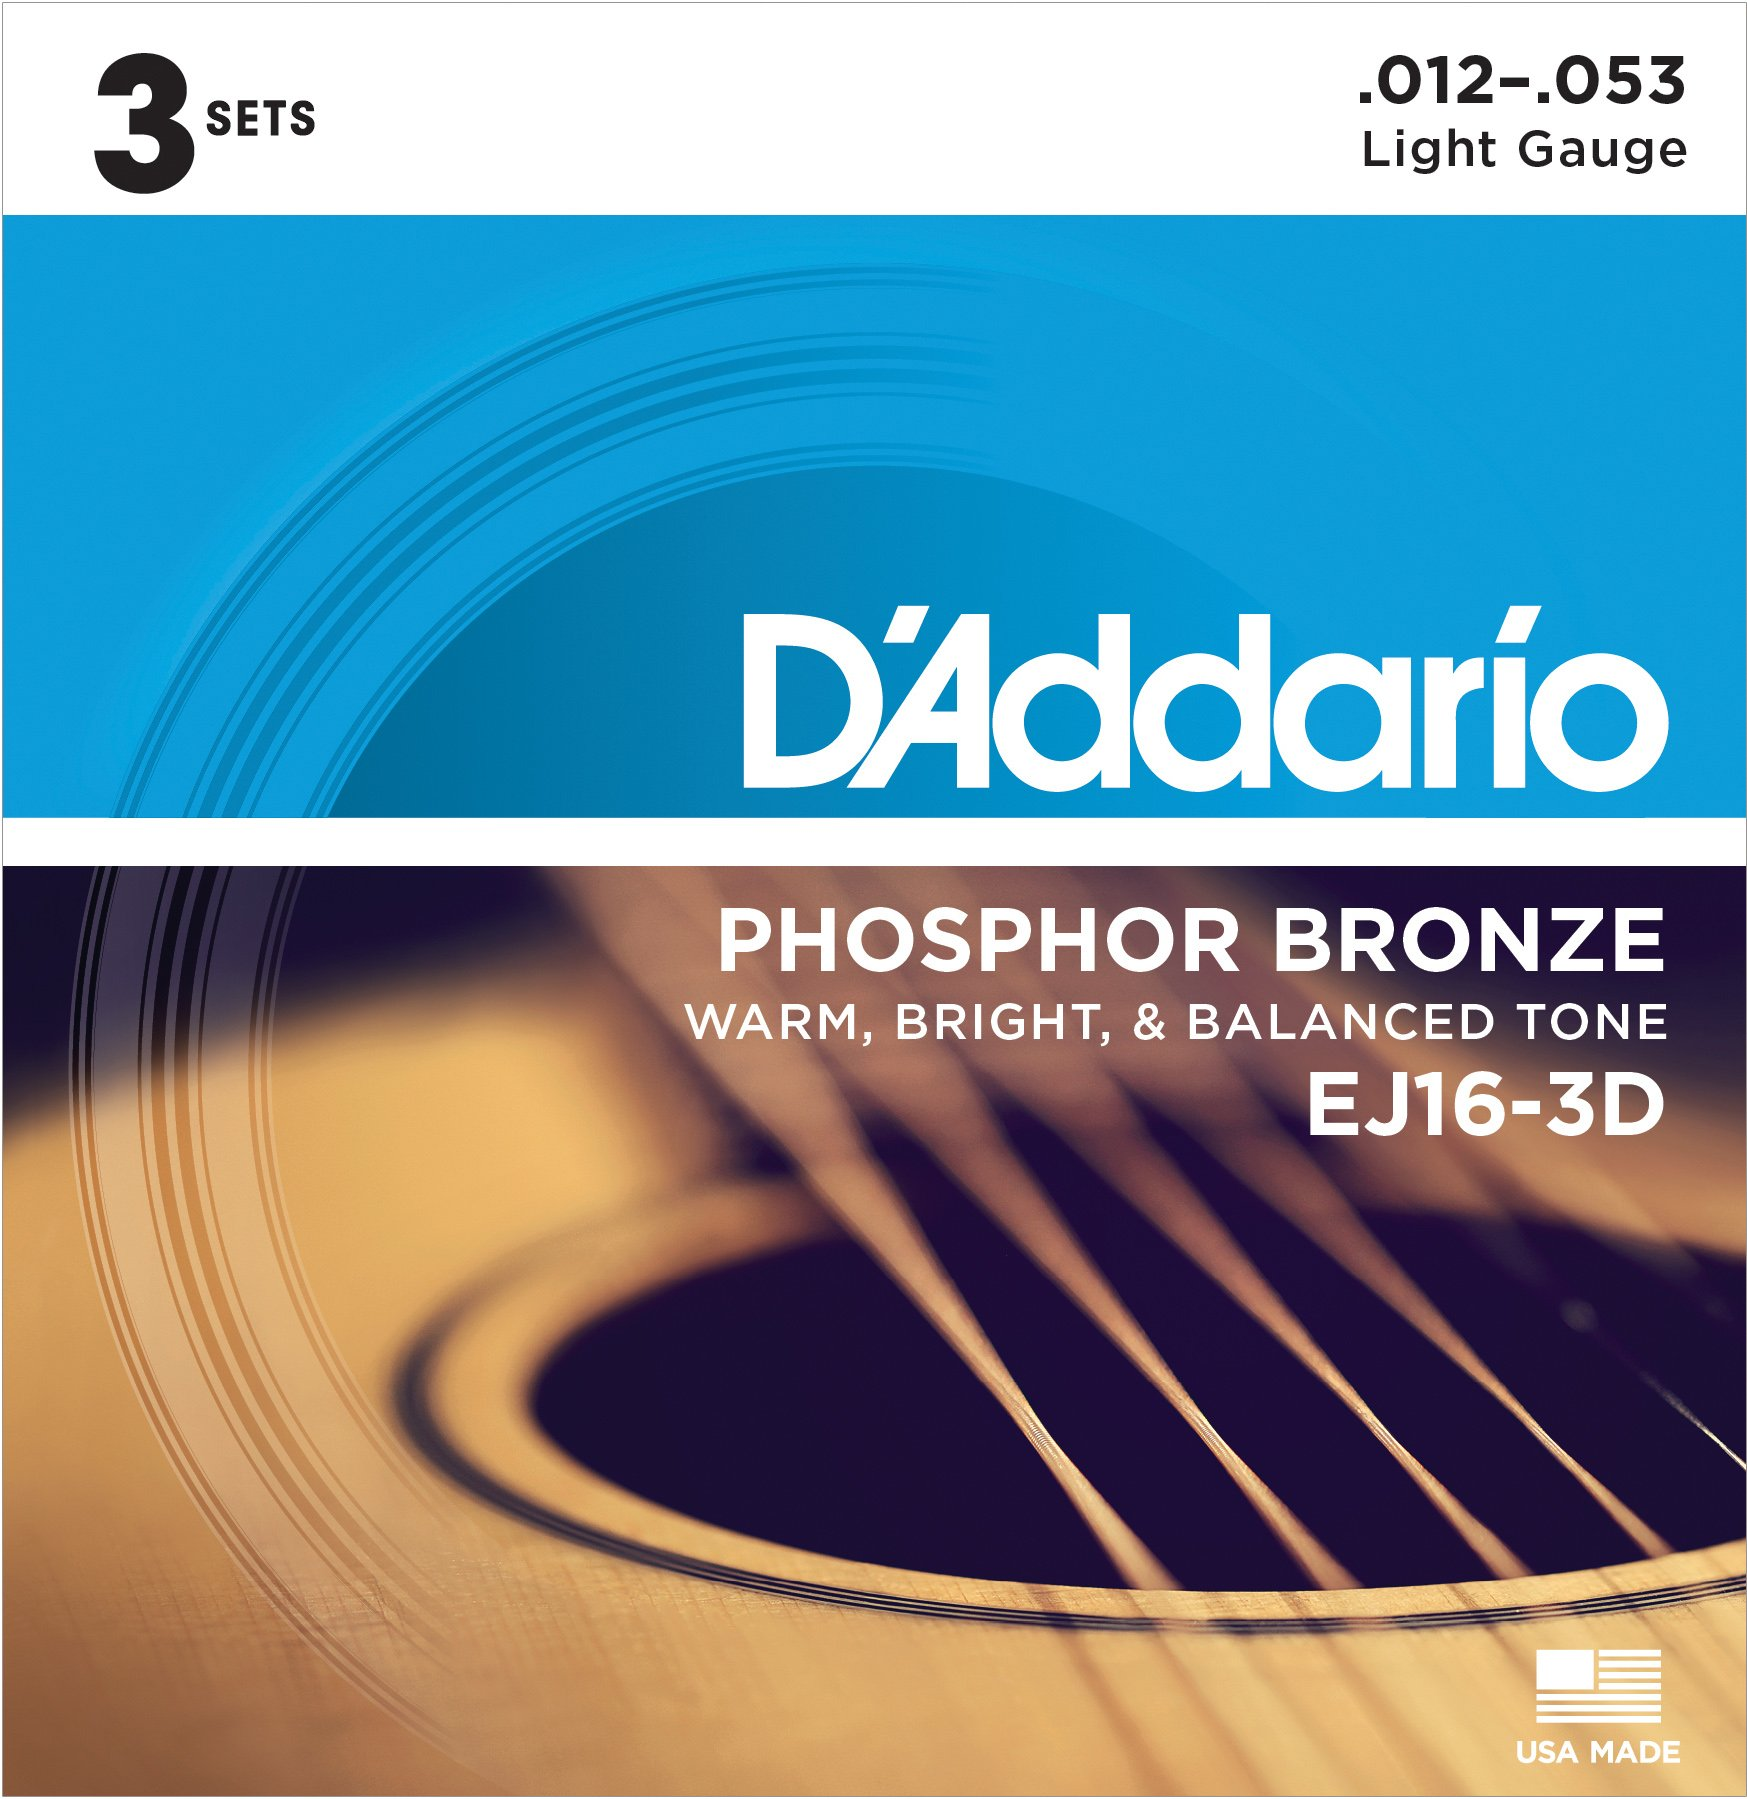 D'Addario EJ16-3D Phosphor Bronze Acoustic Guitar Strings, Light Tension - Corrosion-Resistant Phosphor Bronze, Offers a Warm, Bright and Well-Balanced Acoustic Tone - Pack of 3 Sets by D'Addario